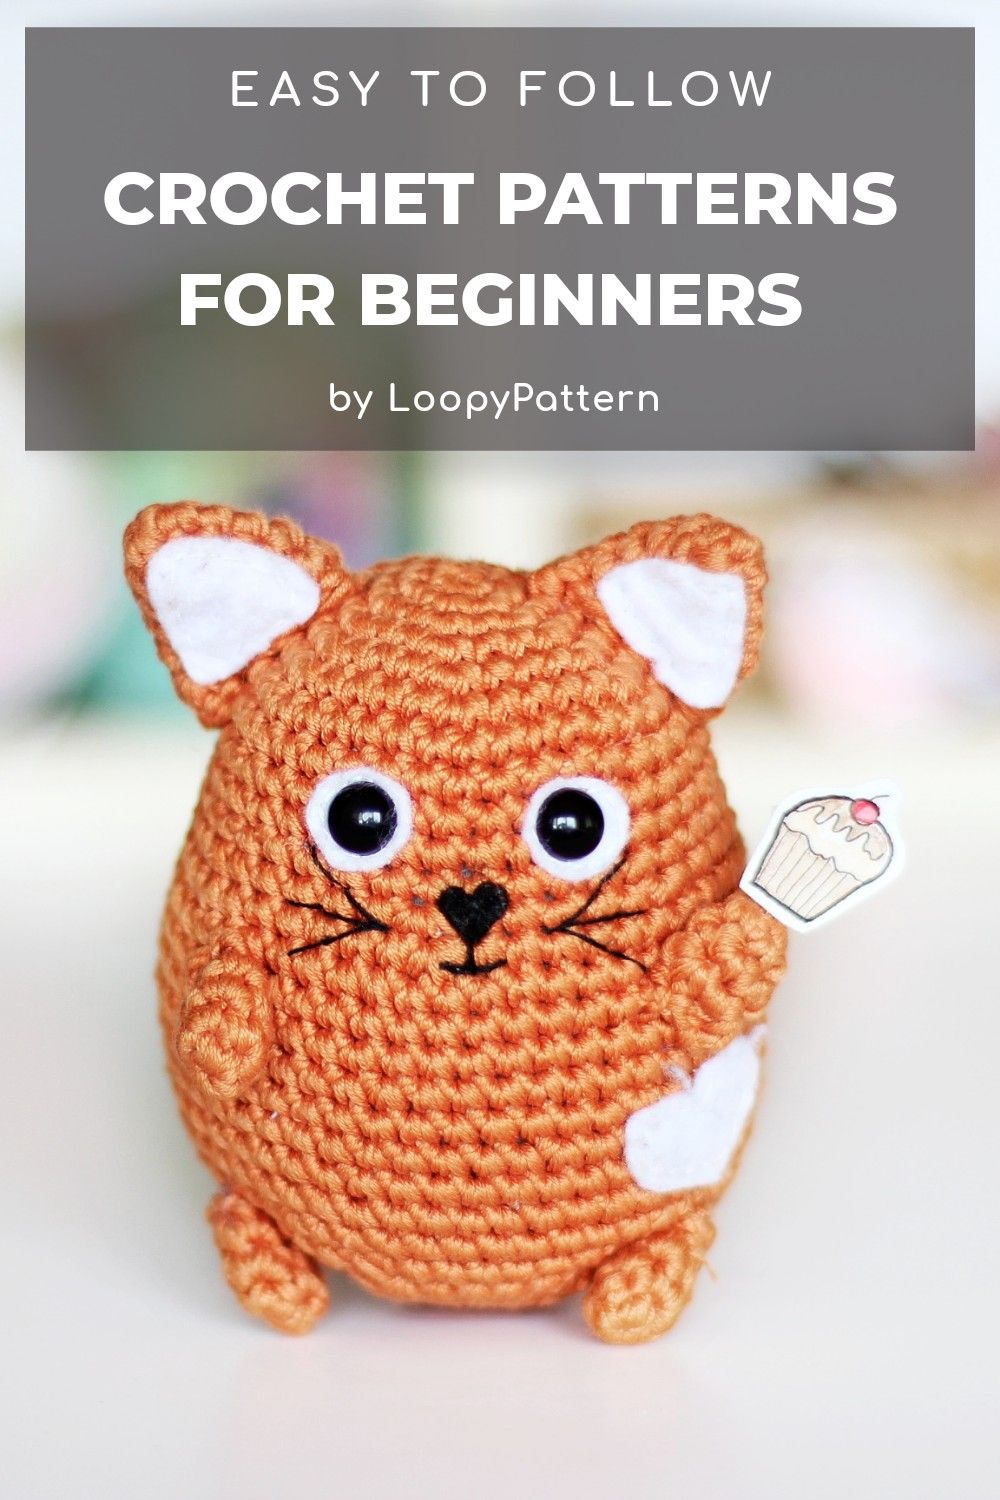 Free crochet cat pattern | Crochet cat pattern, Crochet cat ... | 1500x1000